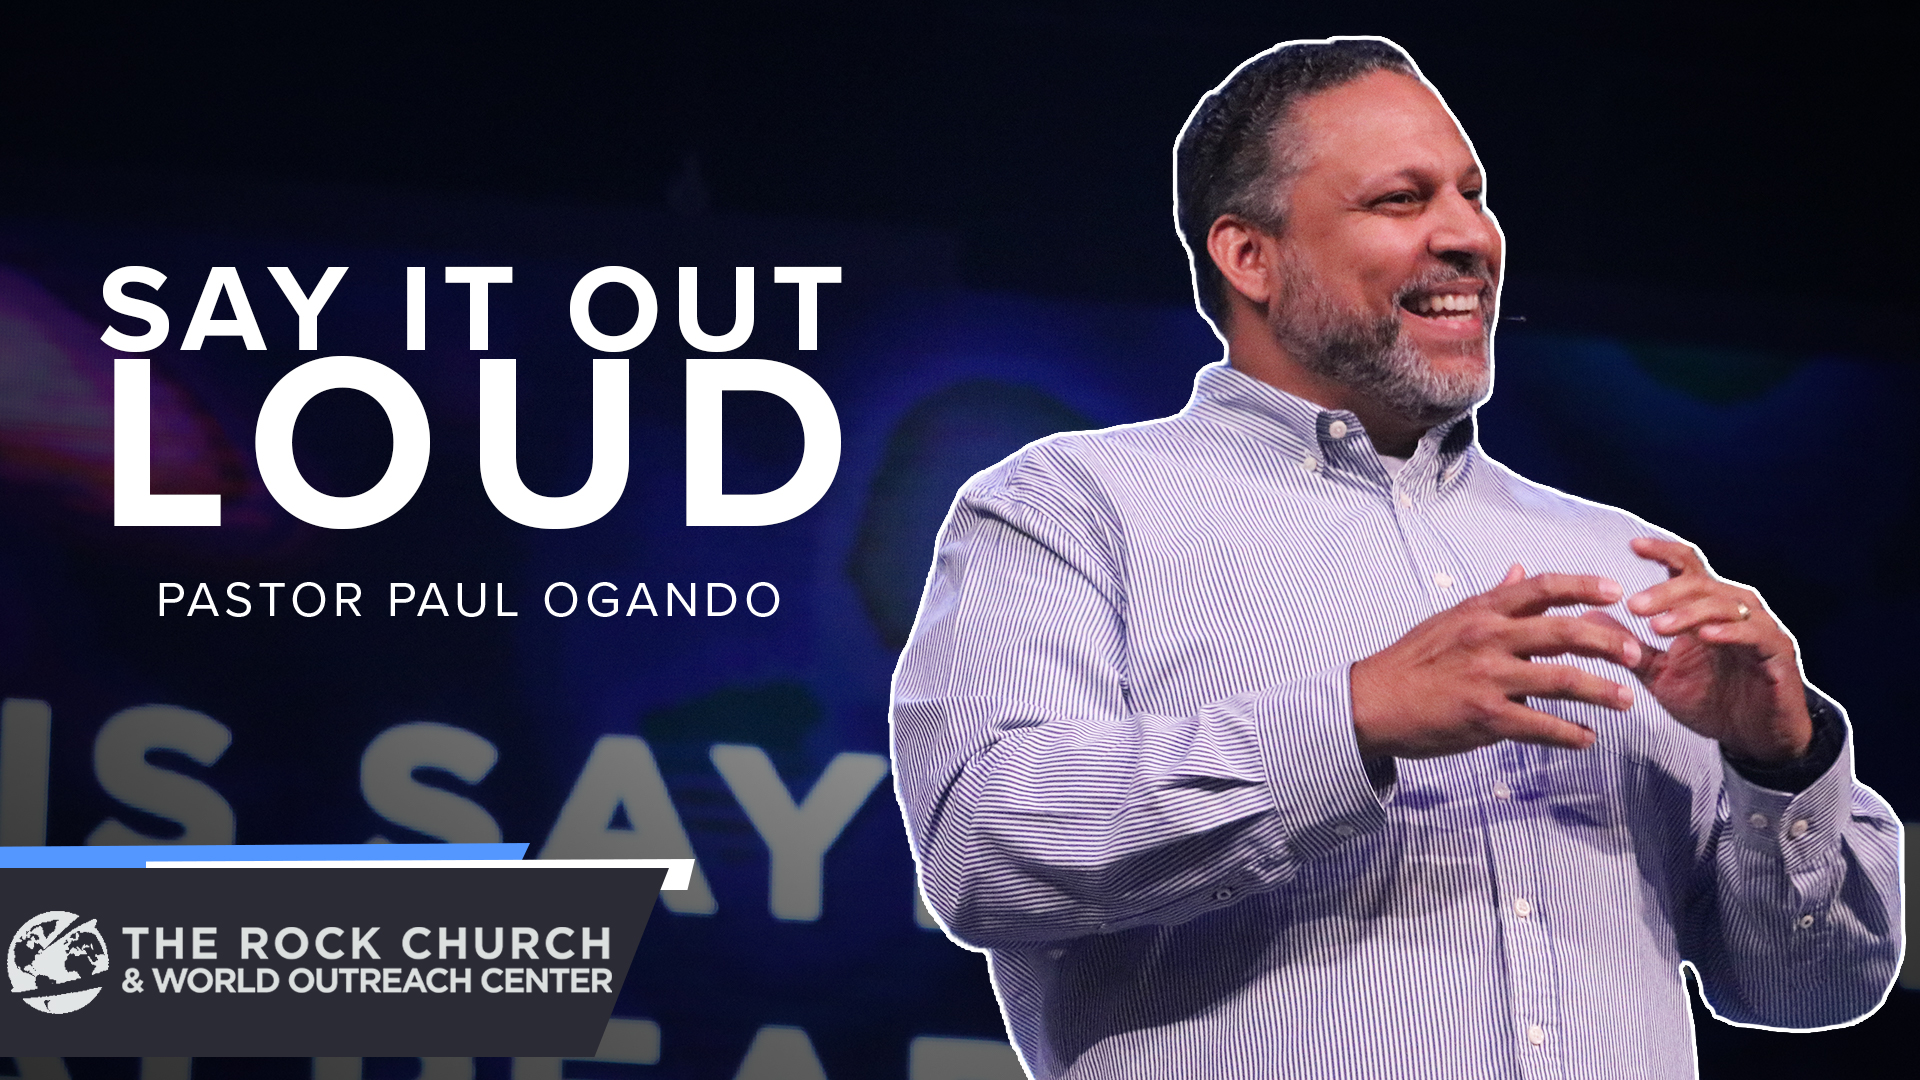 Watch Say It Out Loud!